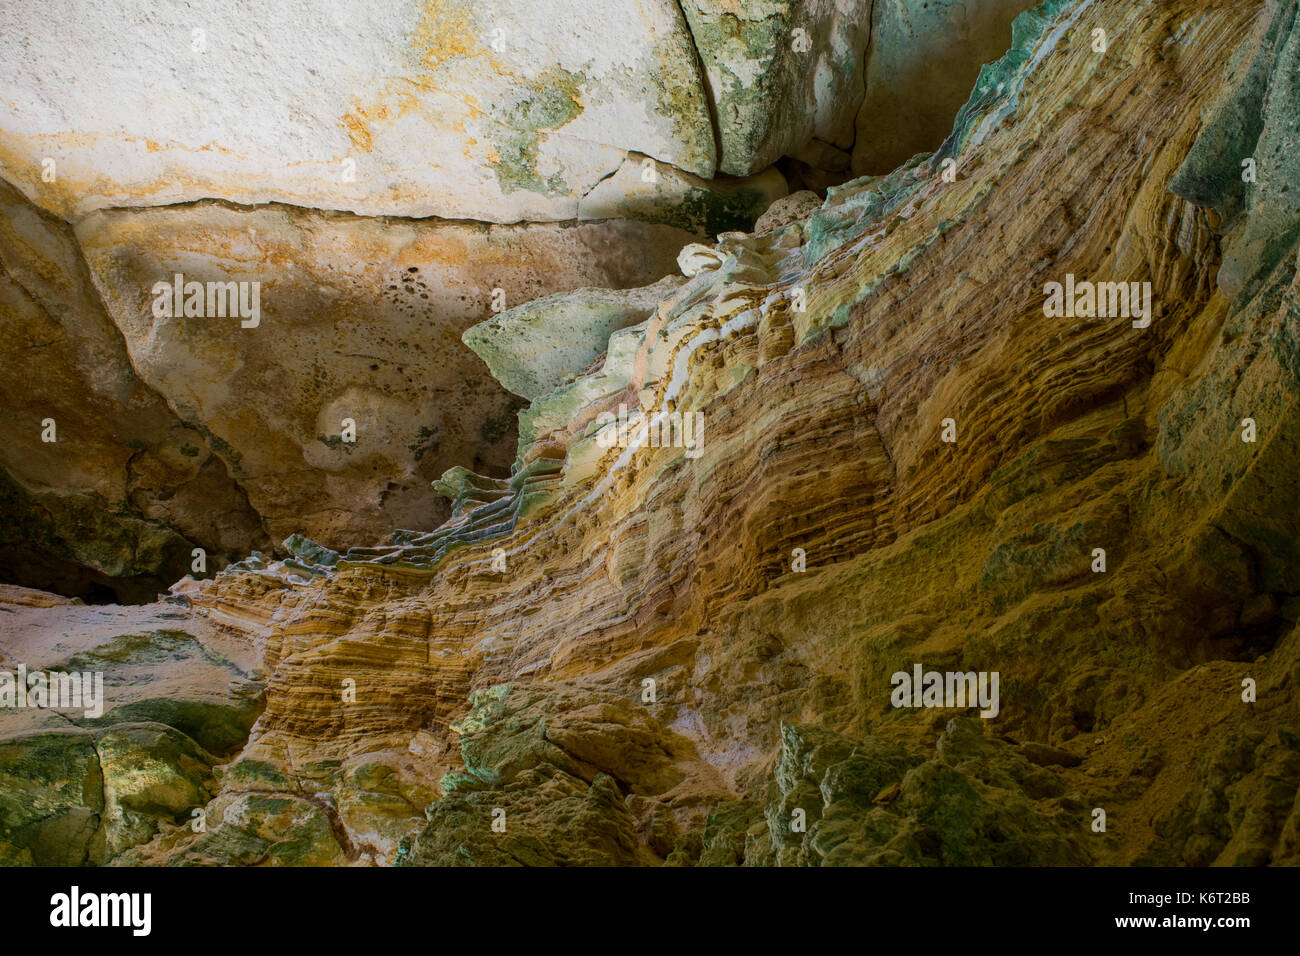 Cliff side cave, formed by sea erosion, containing evidence of sedimentation with different sediment layers having different colours. Cliffs in Malta - Stock Image